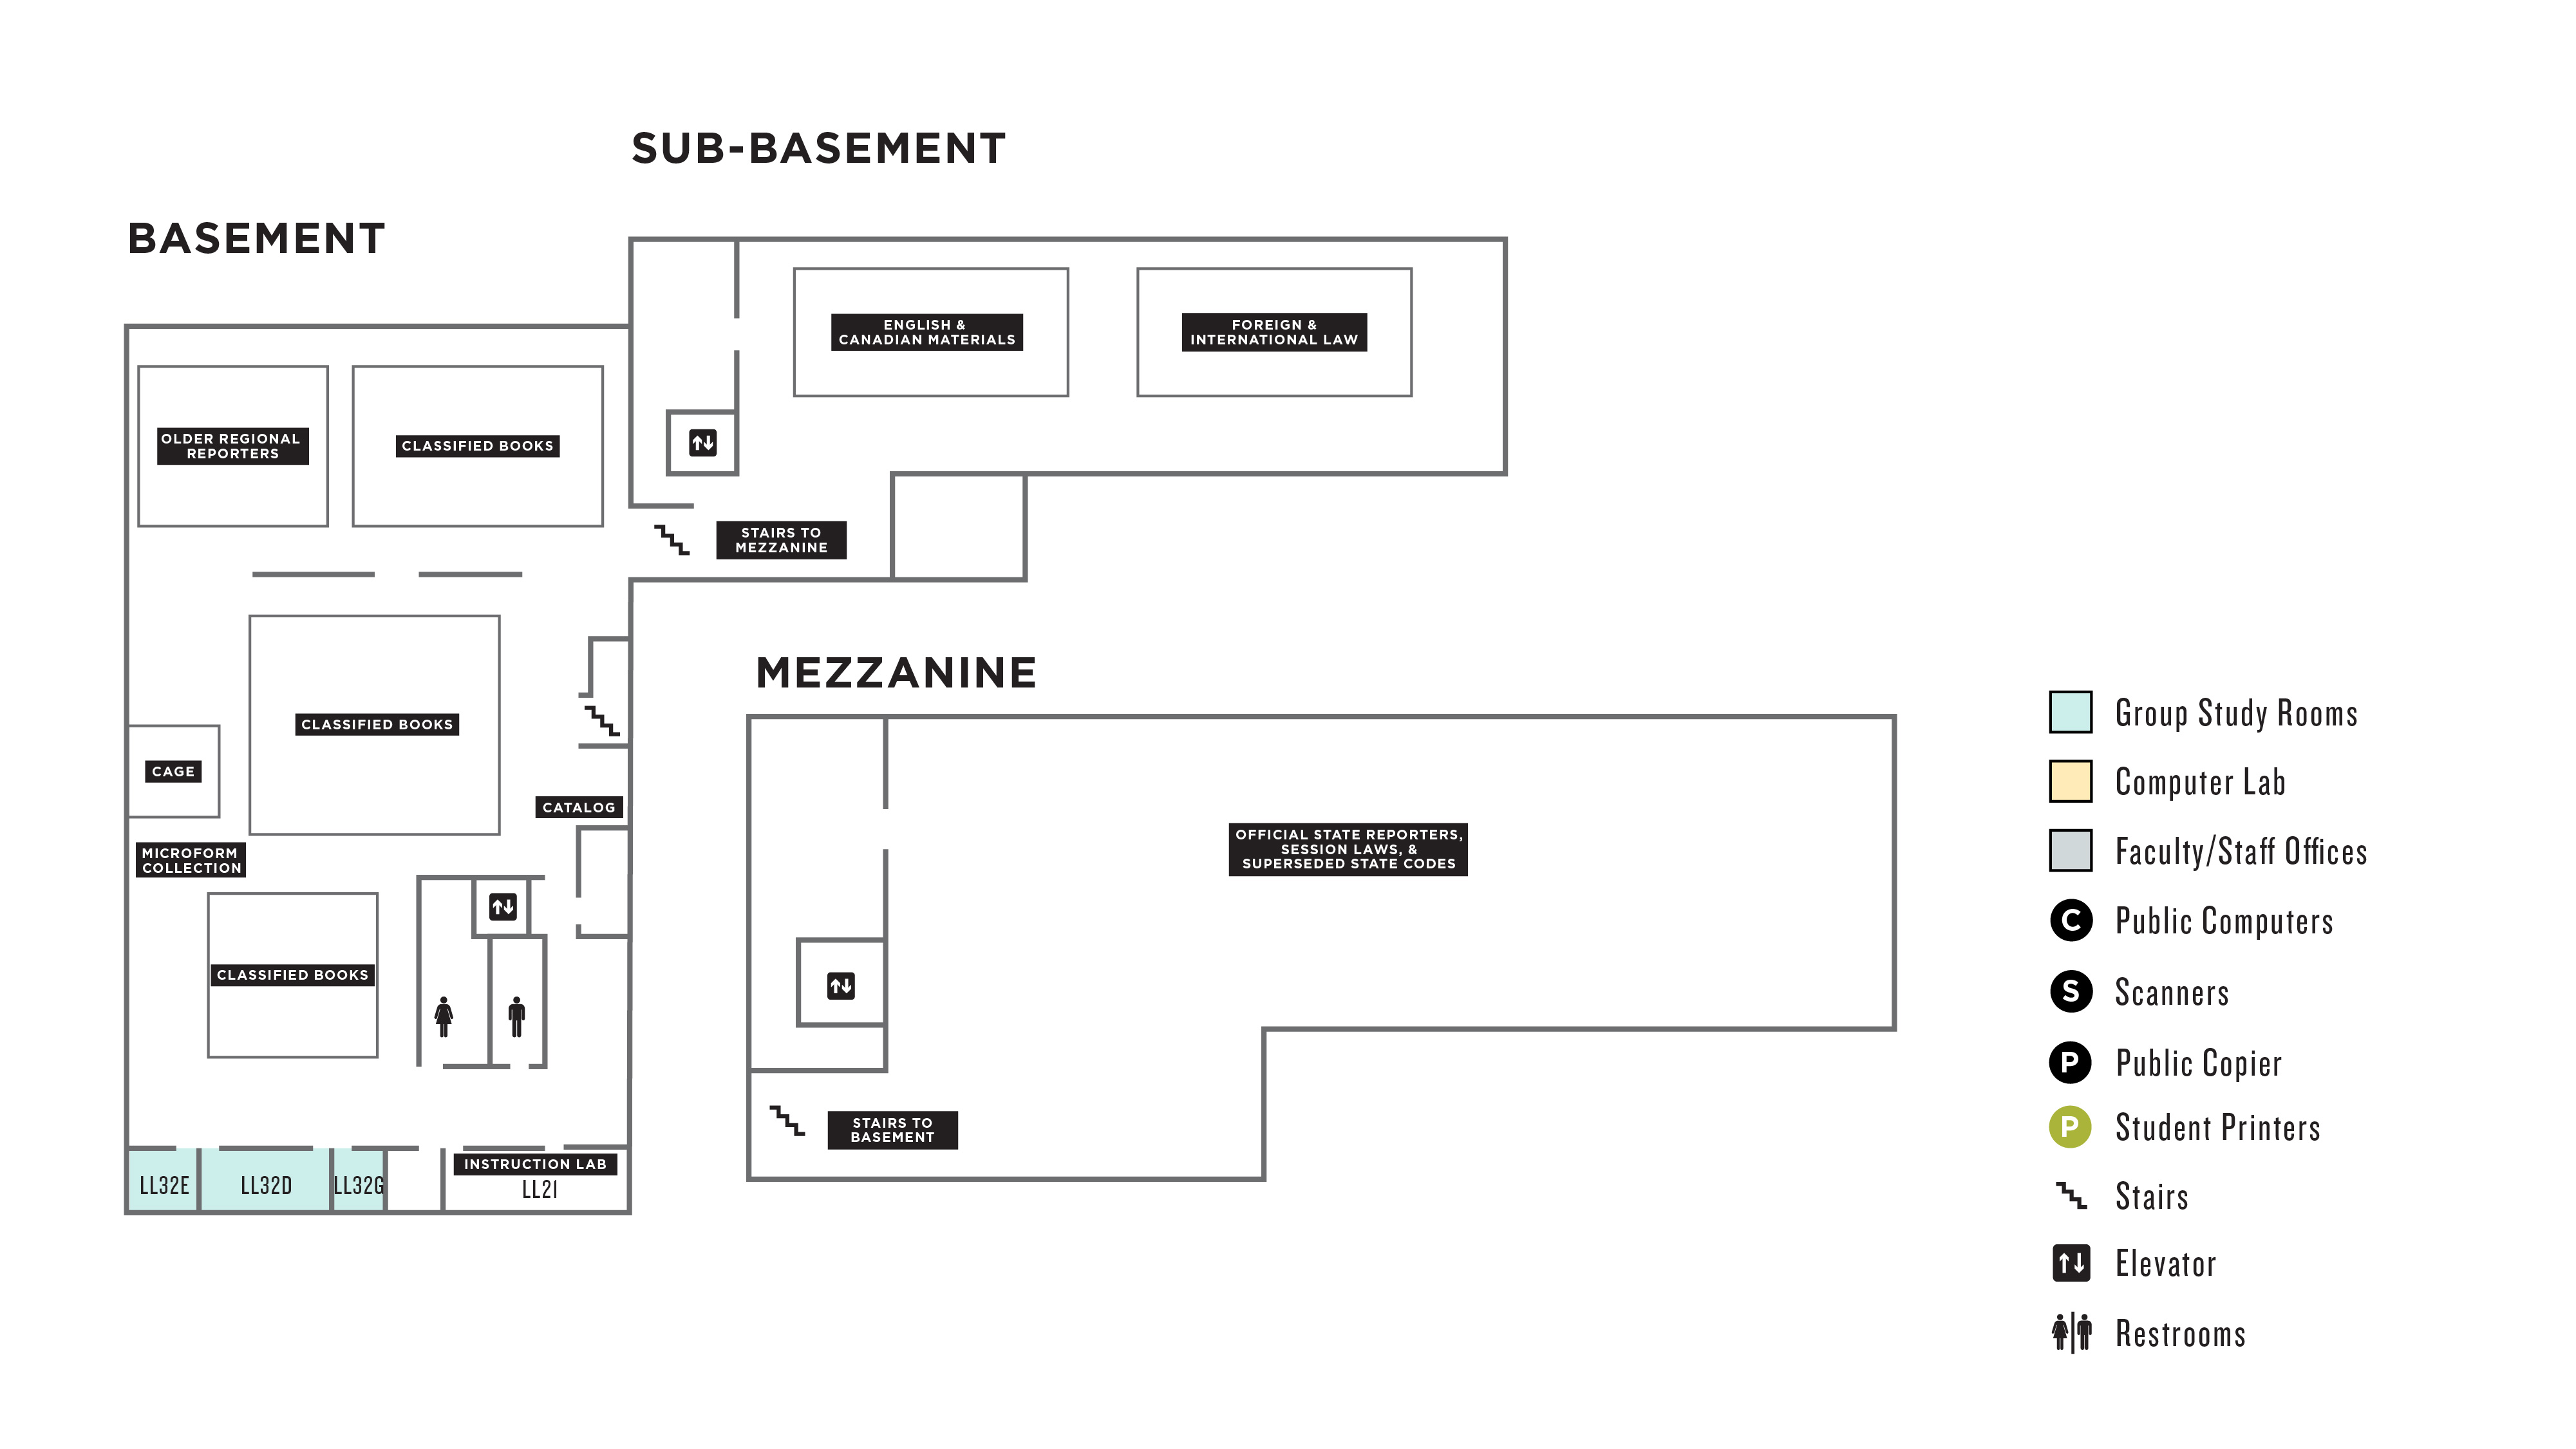 Floorplan of the basement of the Law Library.